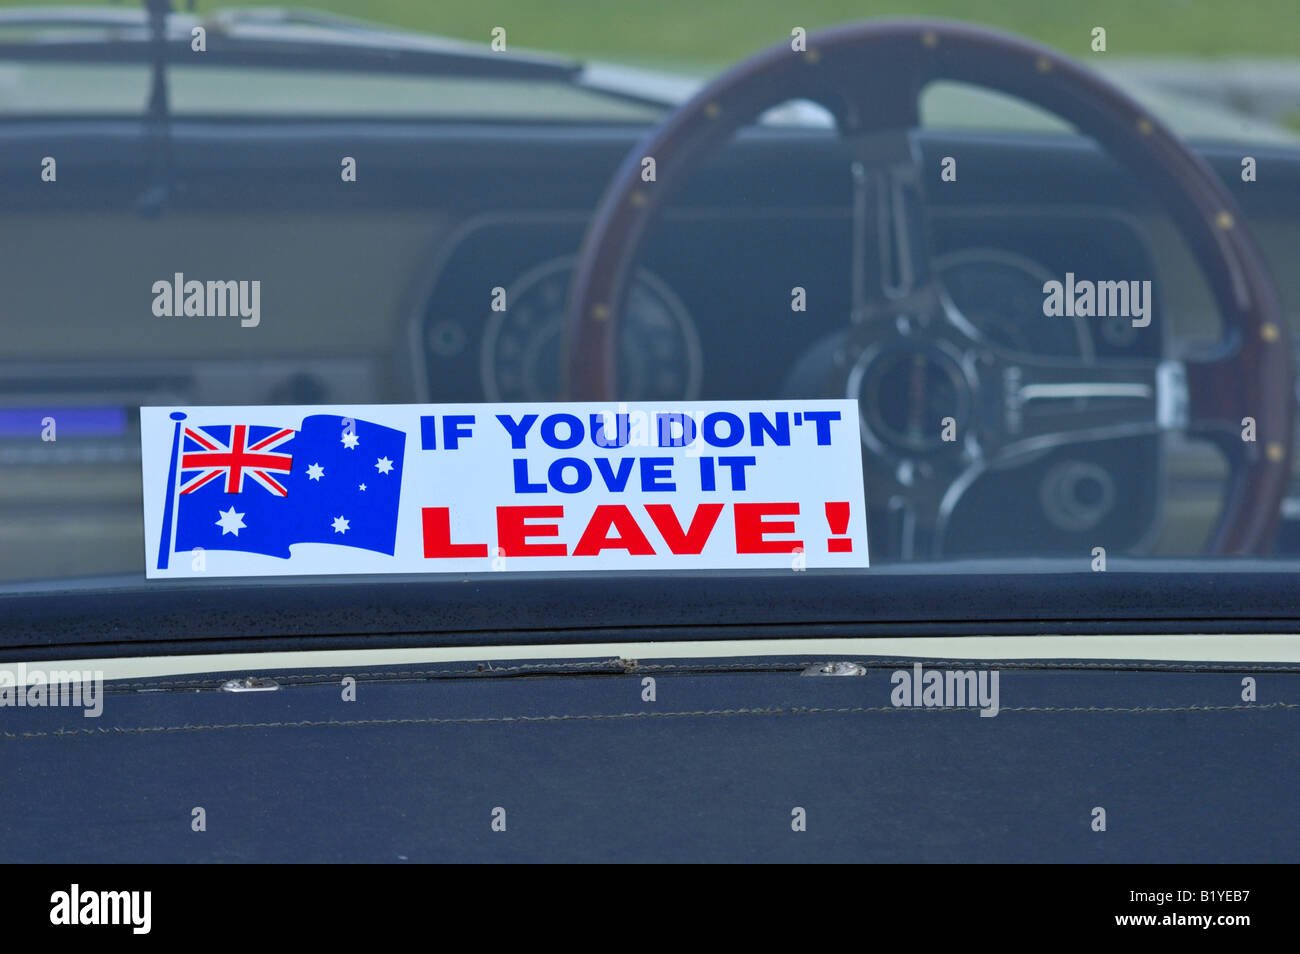 Love it or leave! - Stock Image